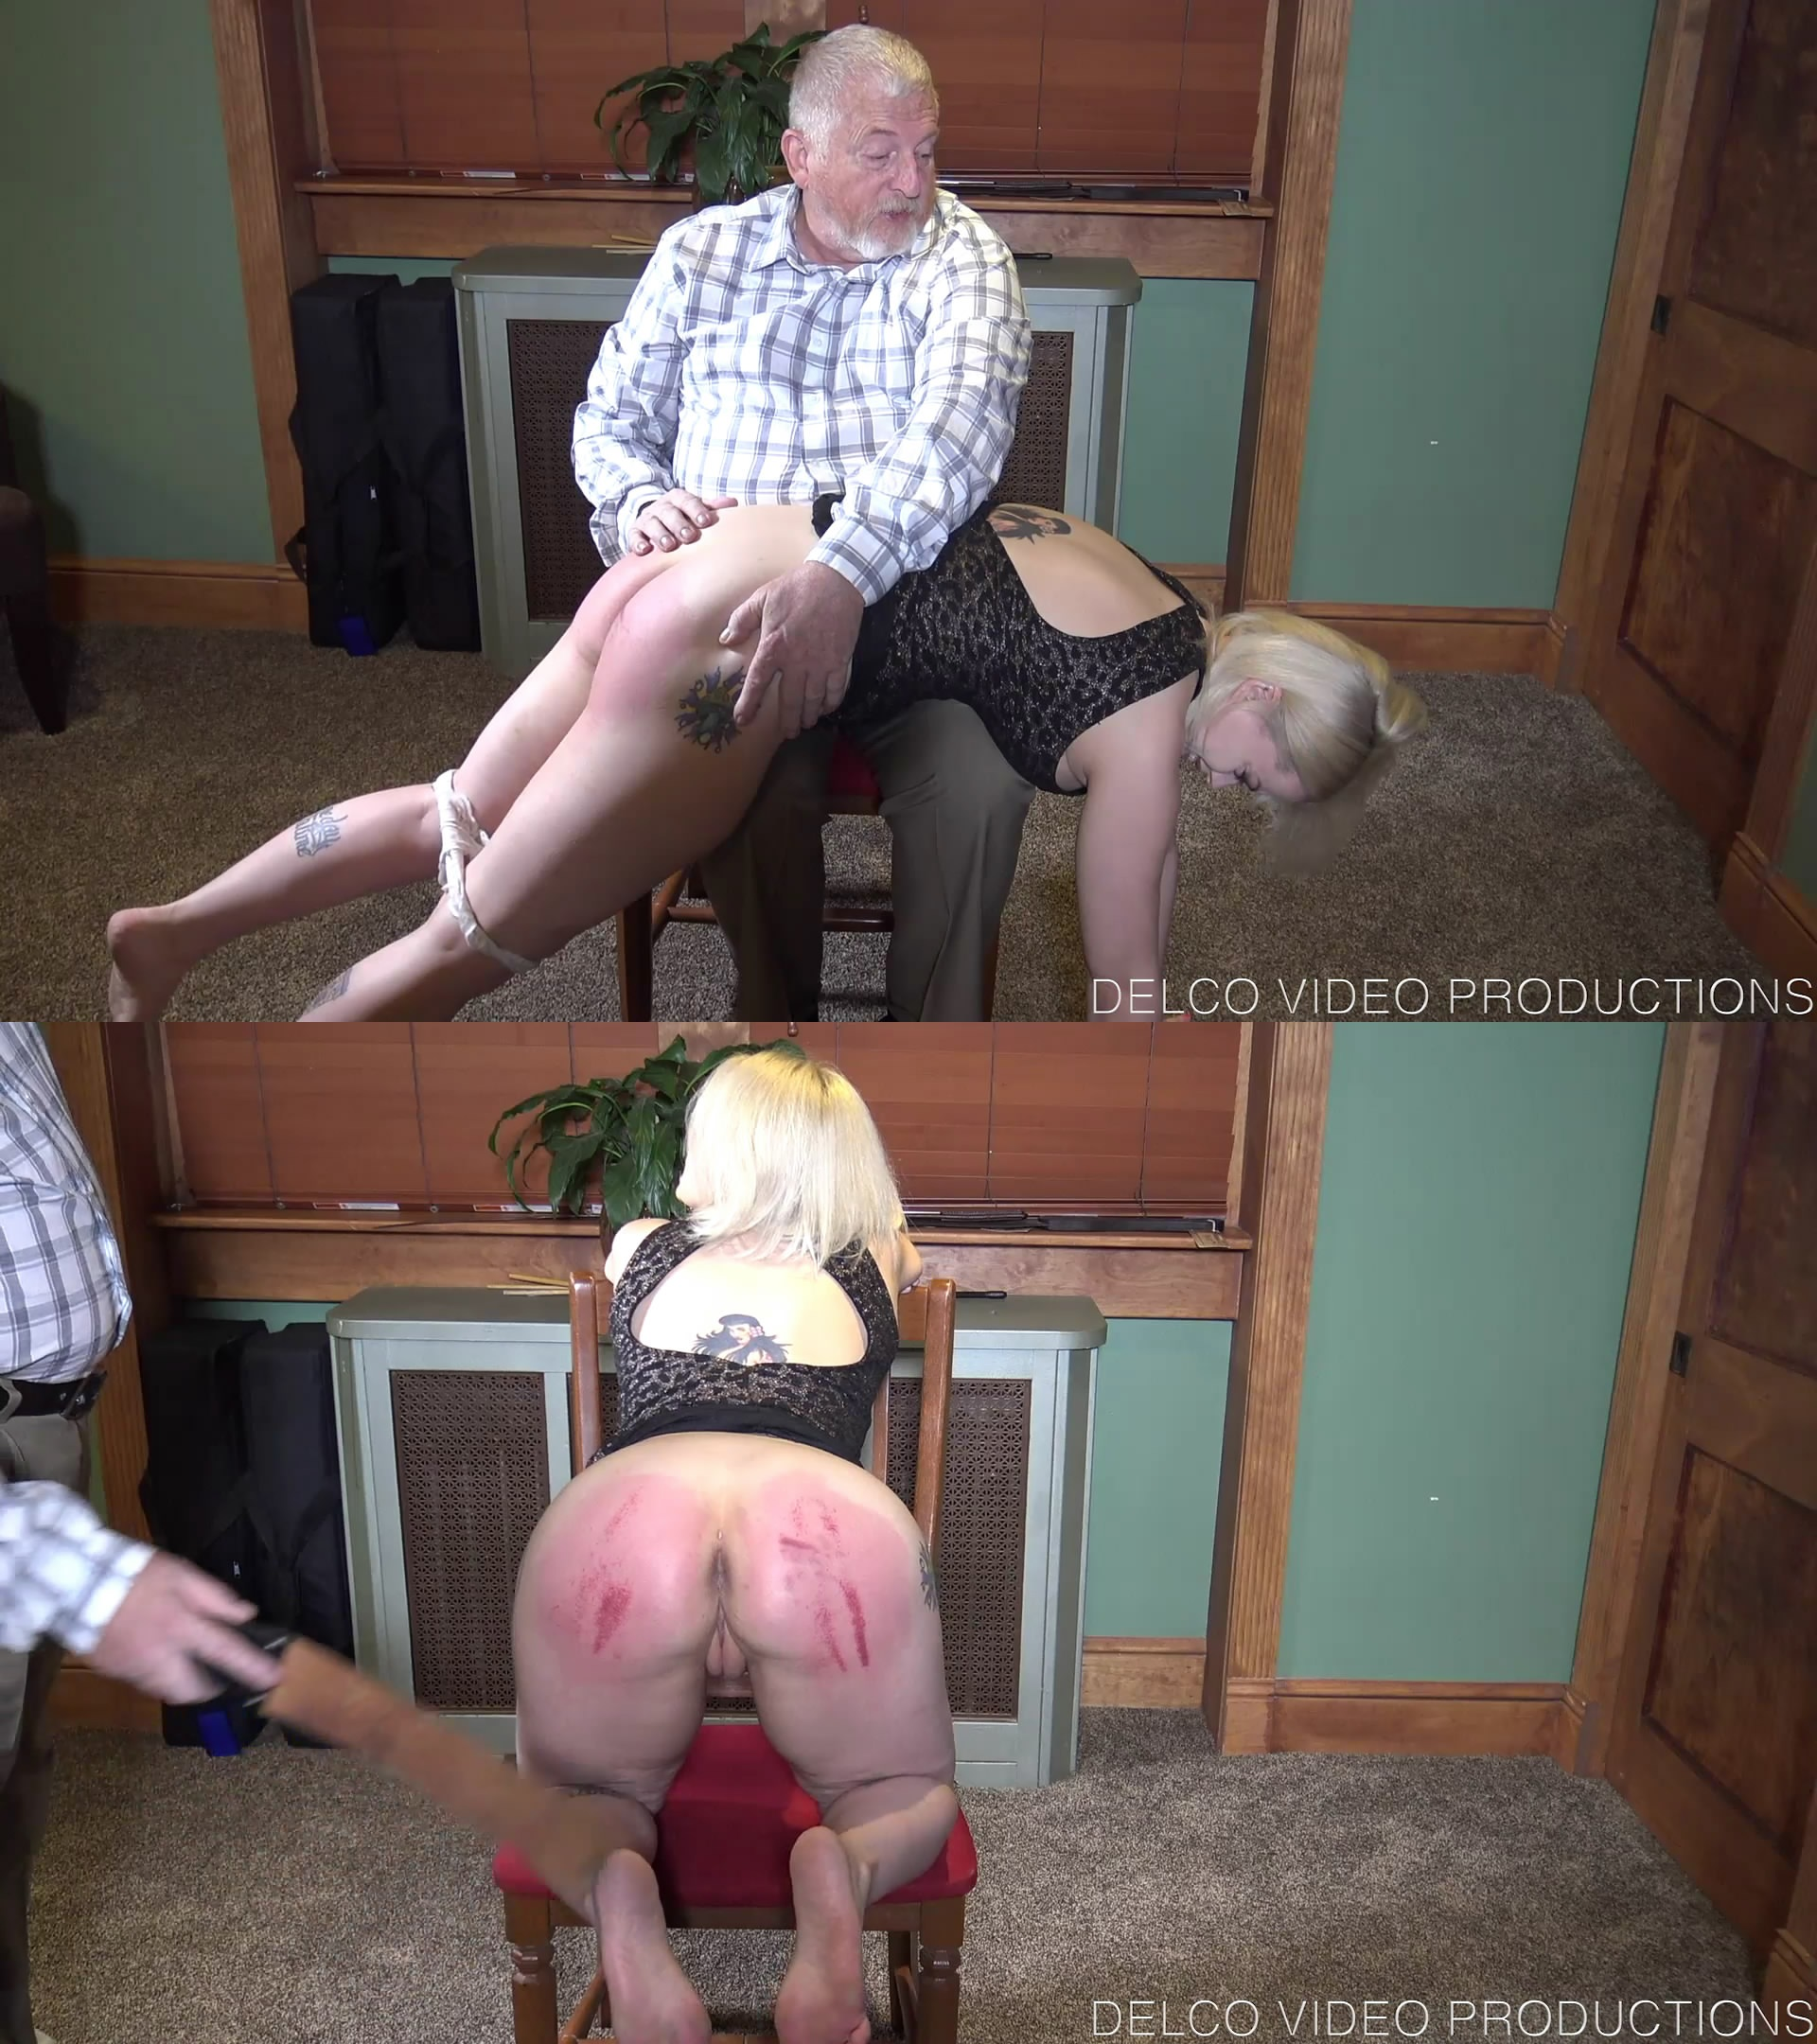 Delco Video Productions – MP4/Full HD – Drunken Wife